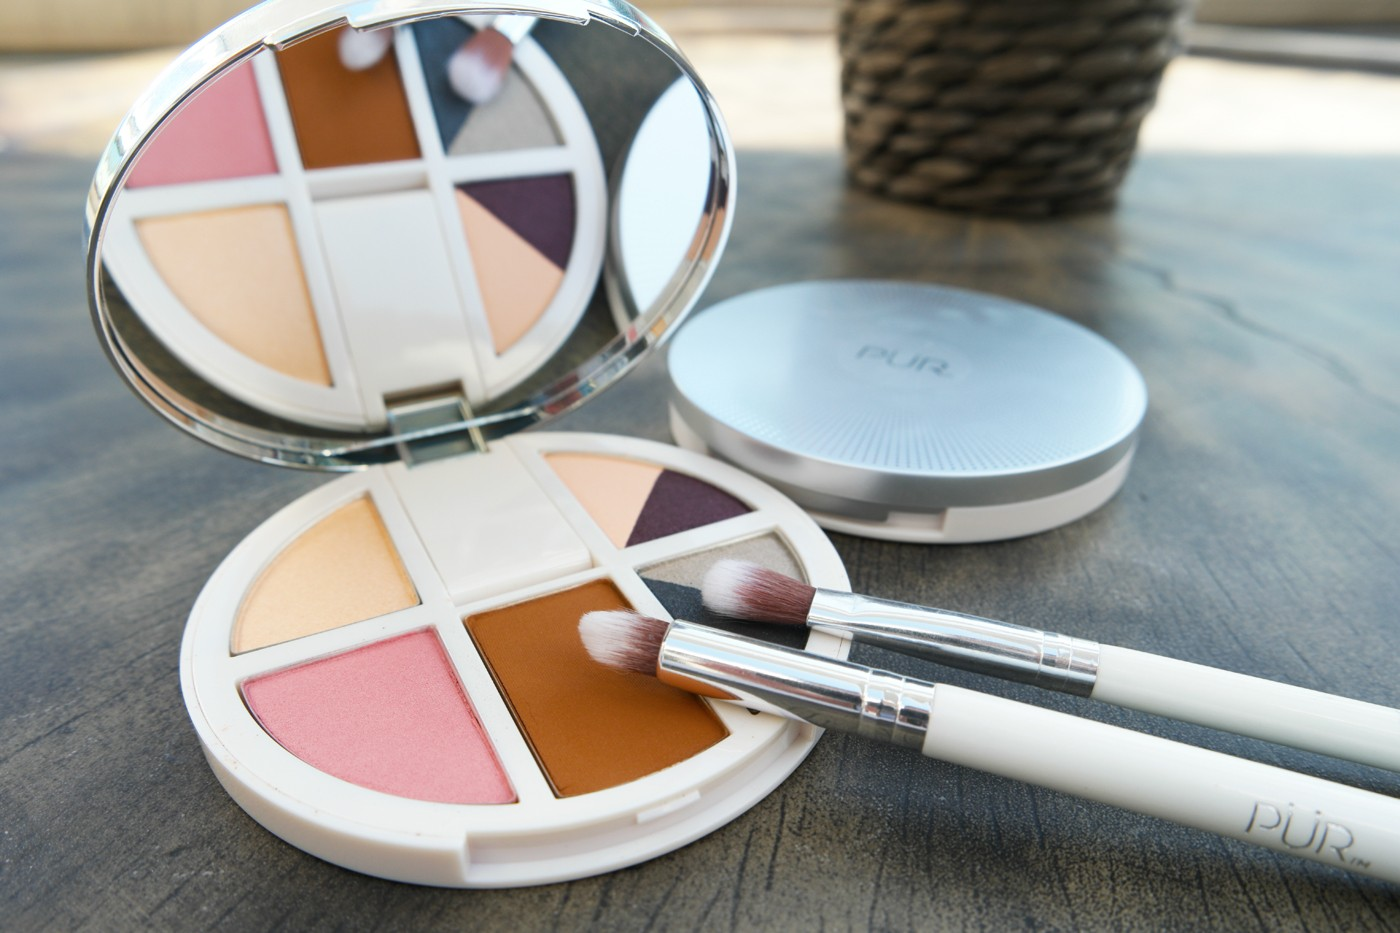 Review Pr Cosmetics Vanity Palettes Eyes Cheeks Purcosmetics Inez Color Contour Plus Loose Eyeshadow Powder Sparkling Silver This Portable Palette Is Perfect For Your Busy Lifestyle With 4 Eye Shadows A Blush Bronzer And Highlighter Taking Look From Meetings To